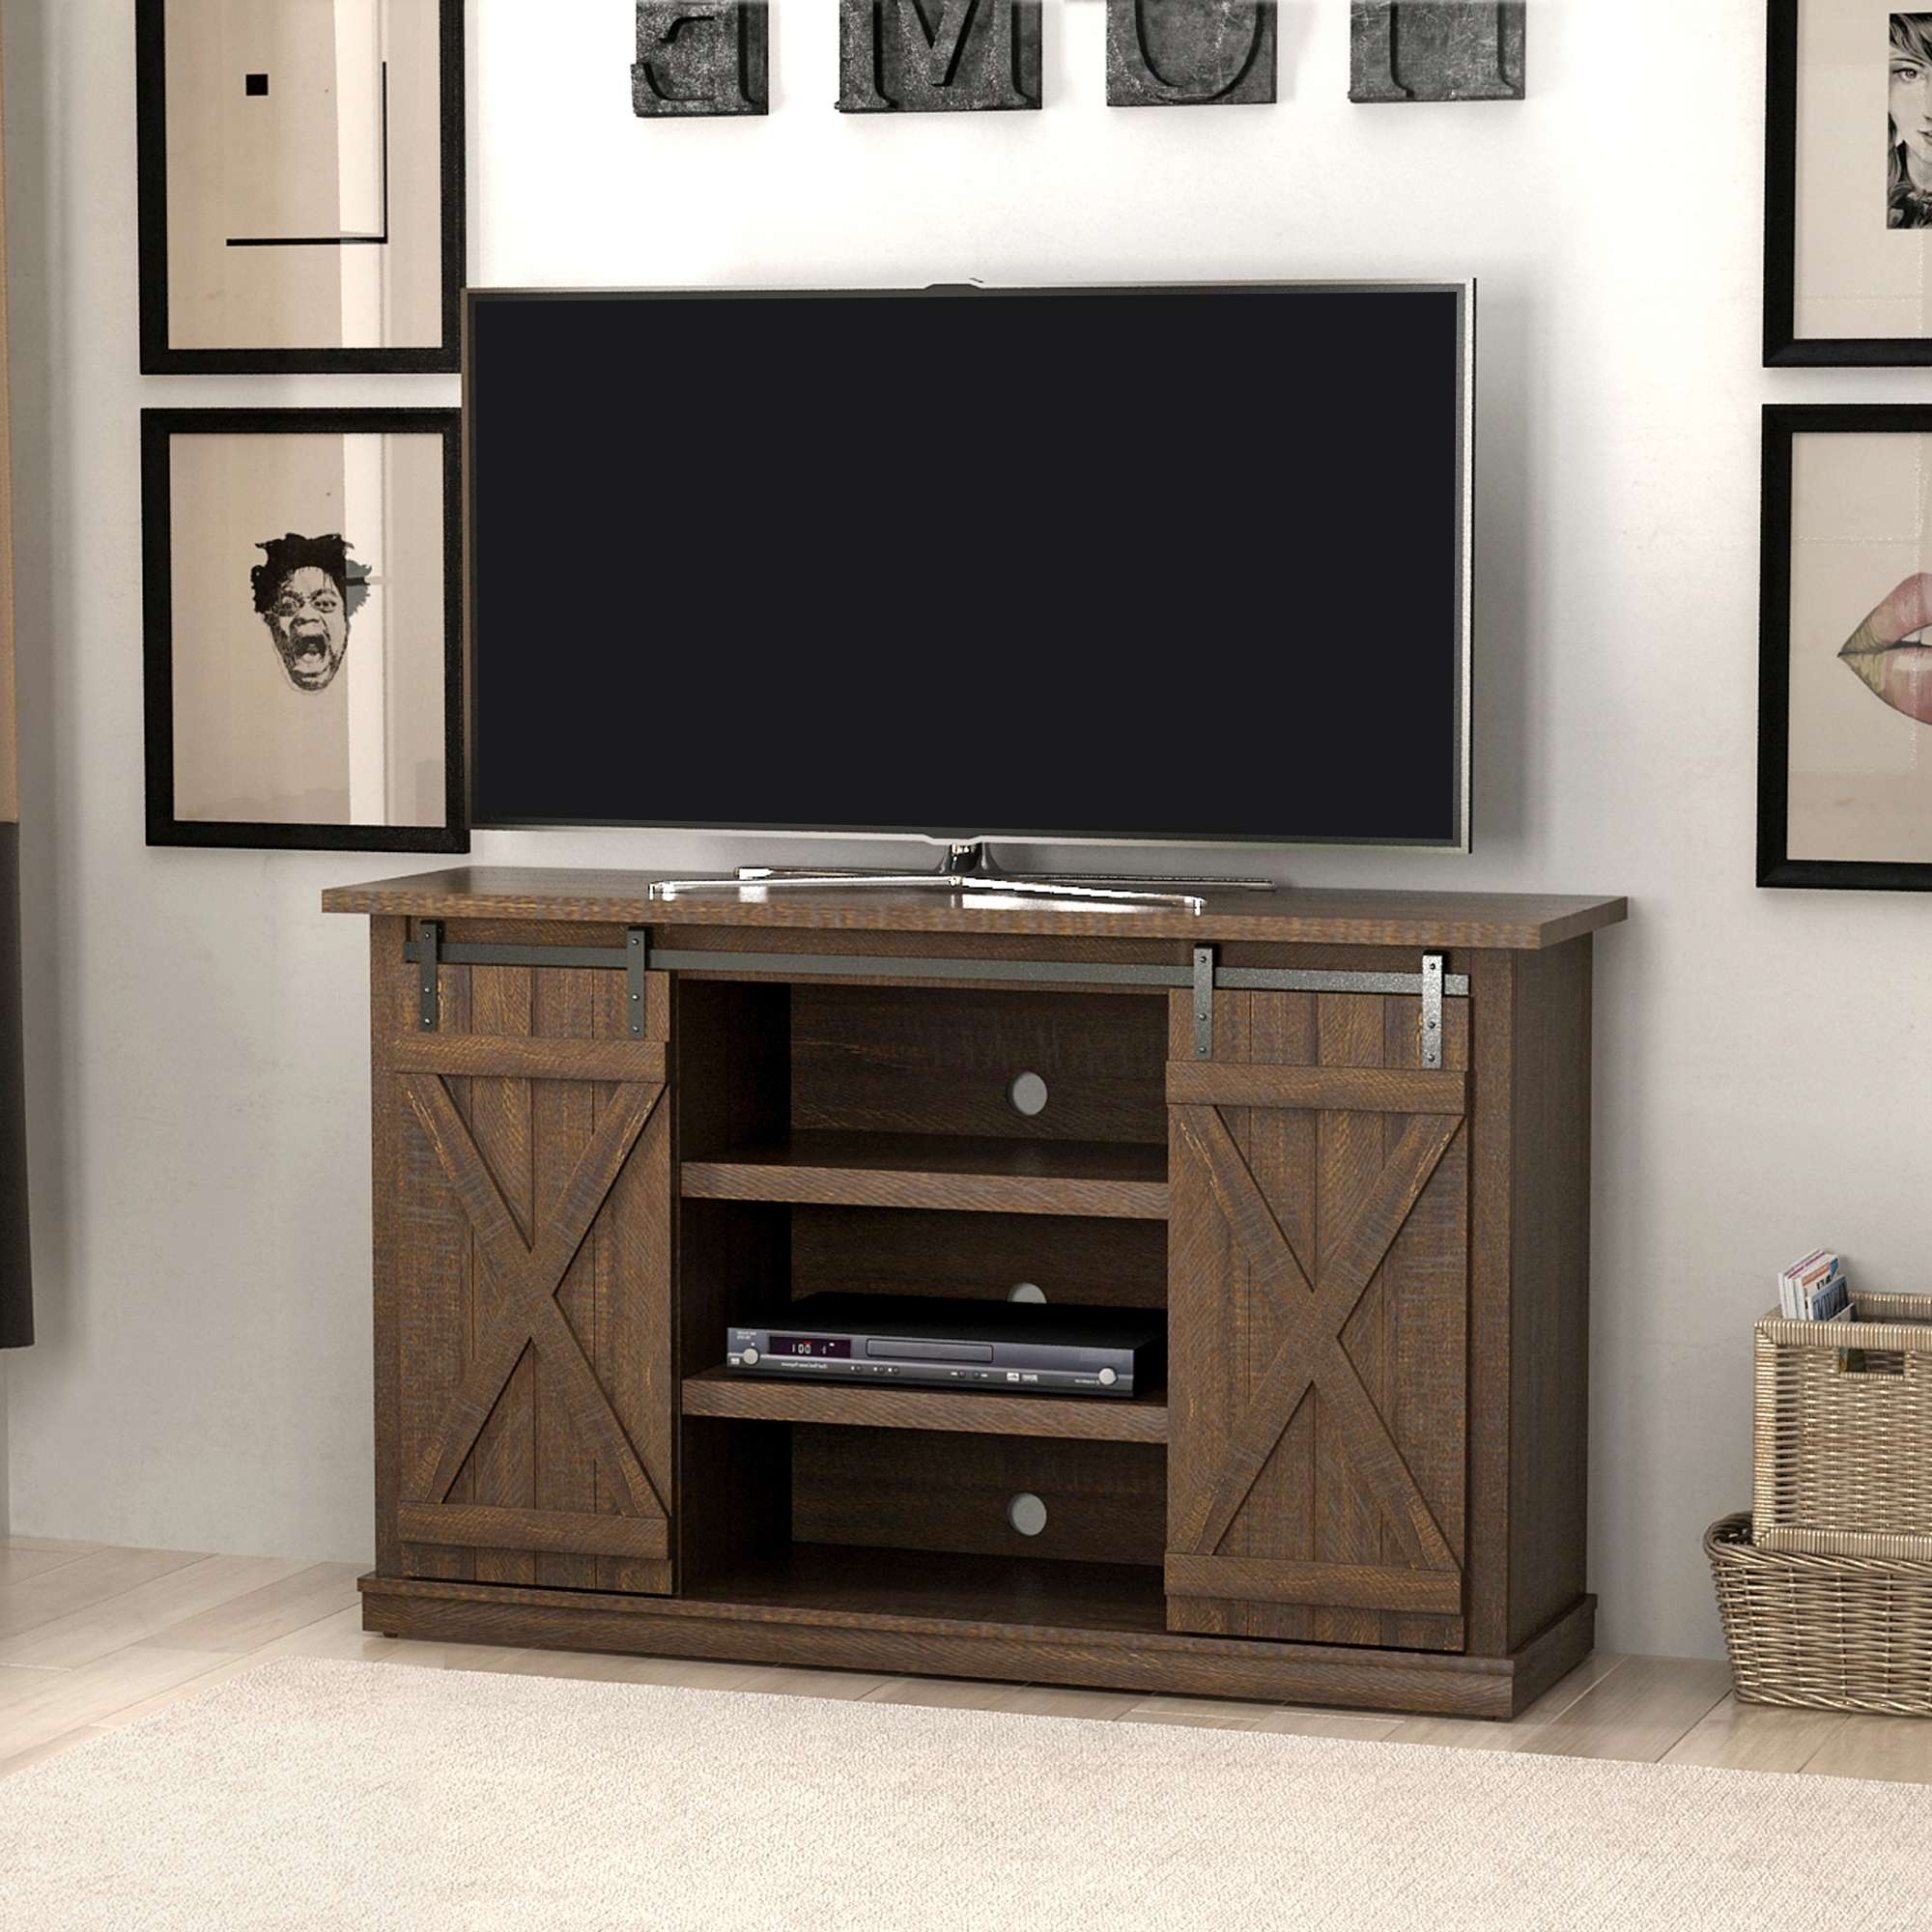 Tv Stands – Walmart Intended For Tv Stands For Tube Tvs (View 9 of 15)